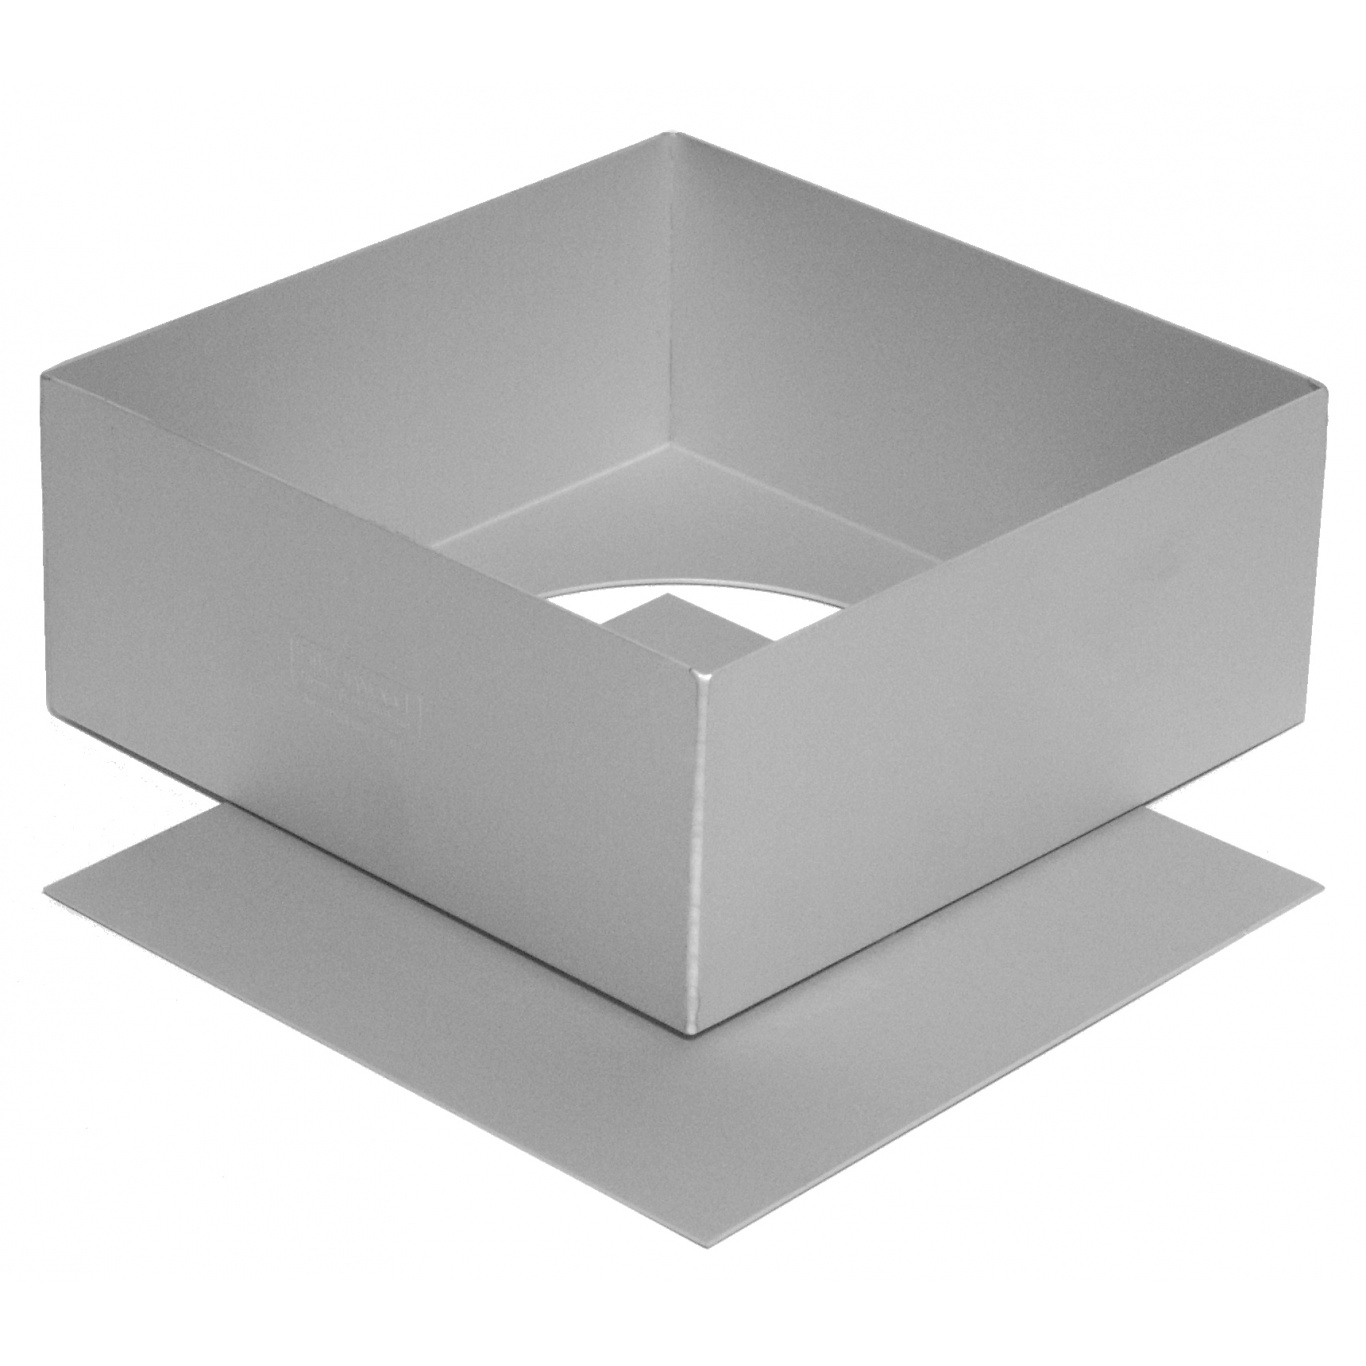 Image of Silverwood Square Cake Pan Loose Base 8ins/20cm